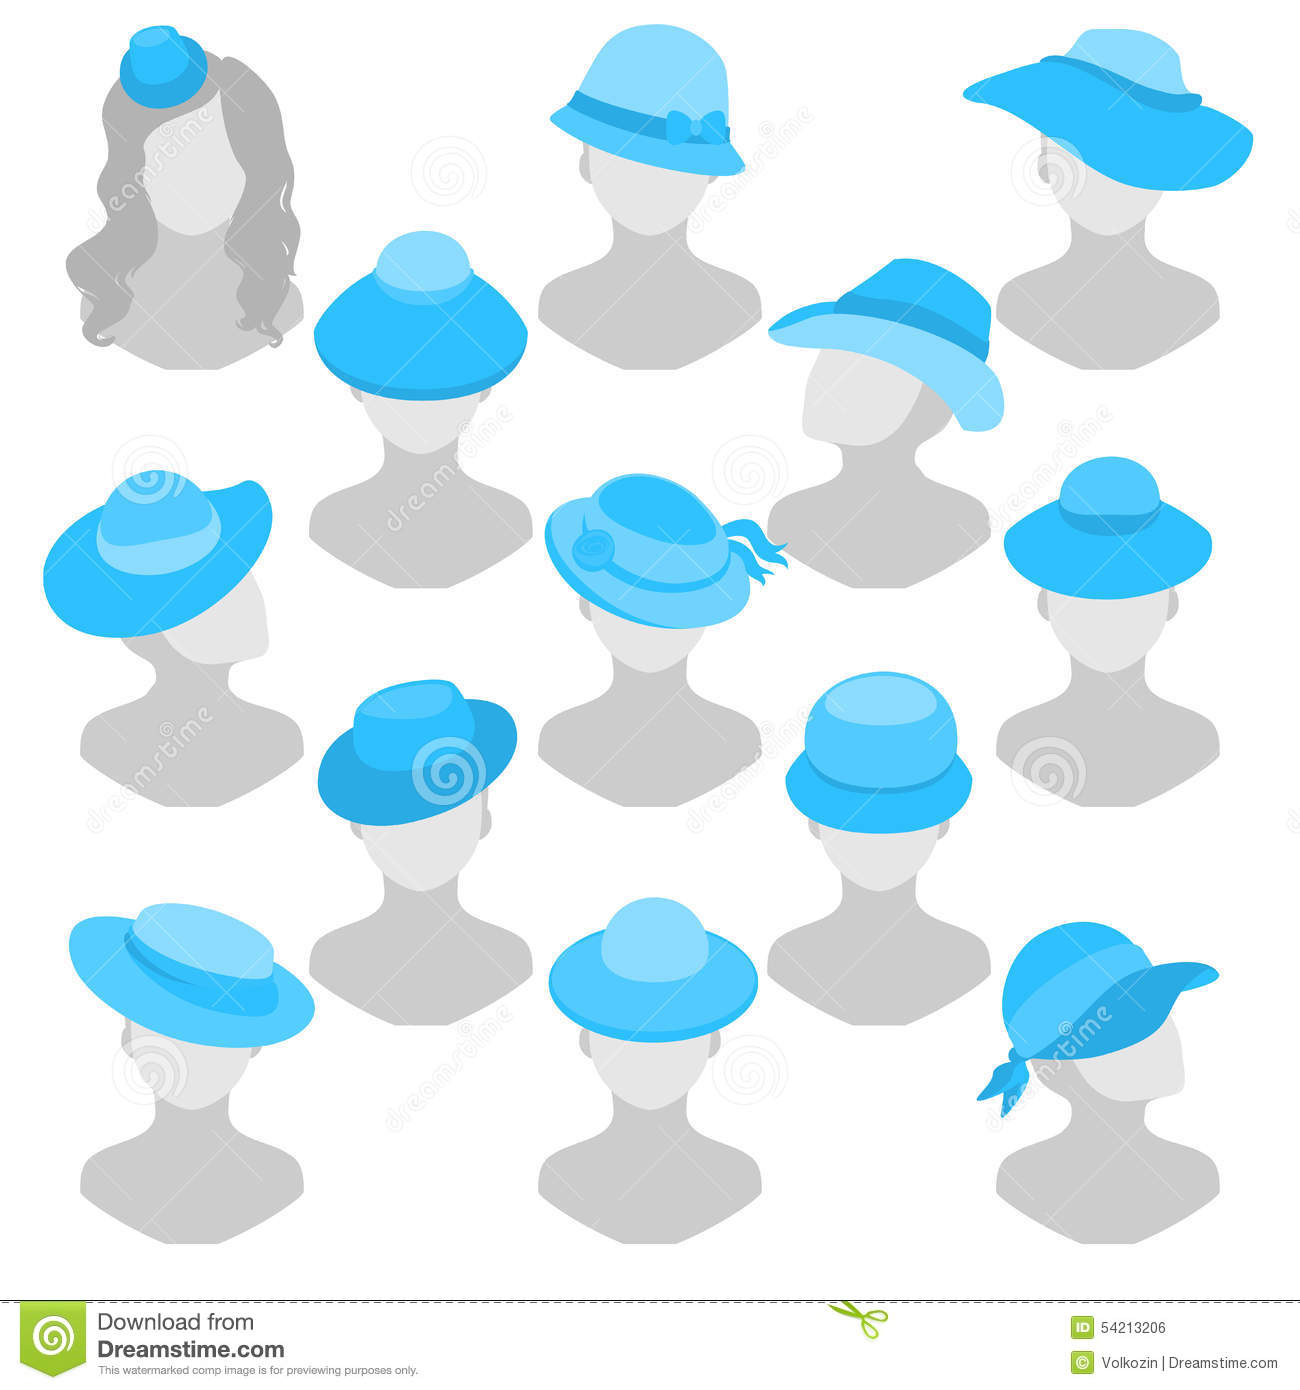 Different Hat Styles: Background Illustration Of Different Women's Hats In A